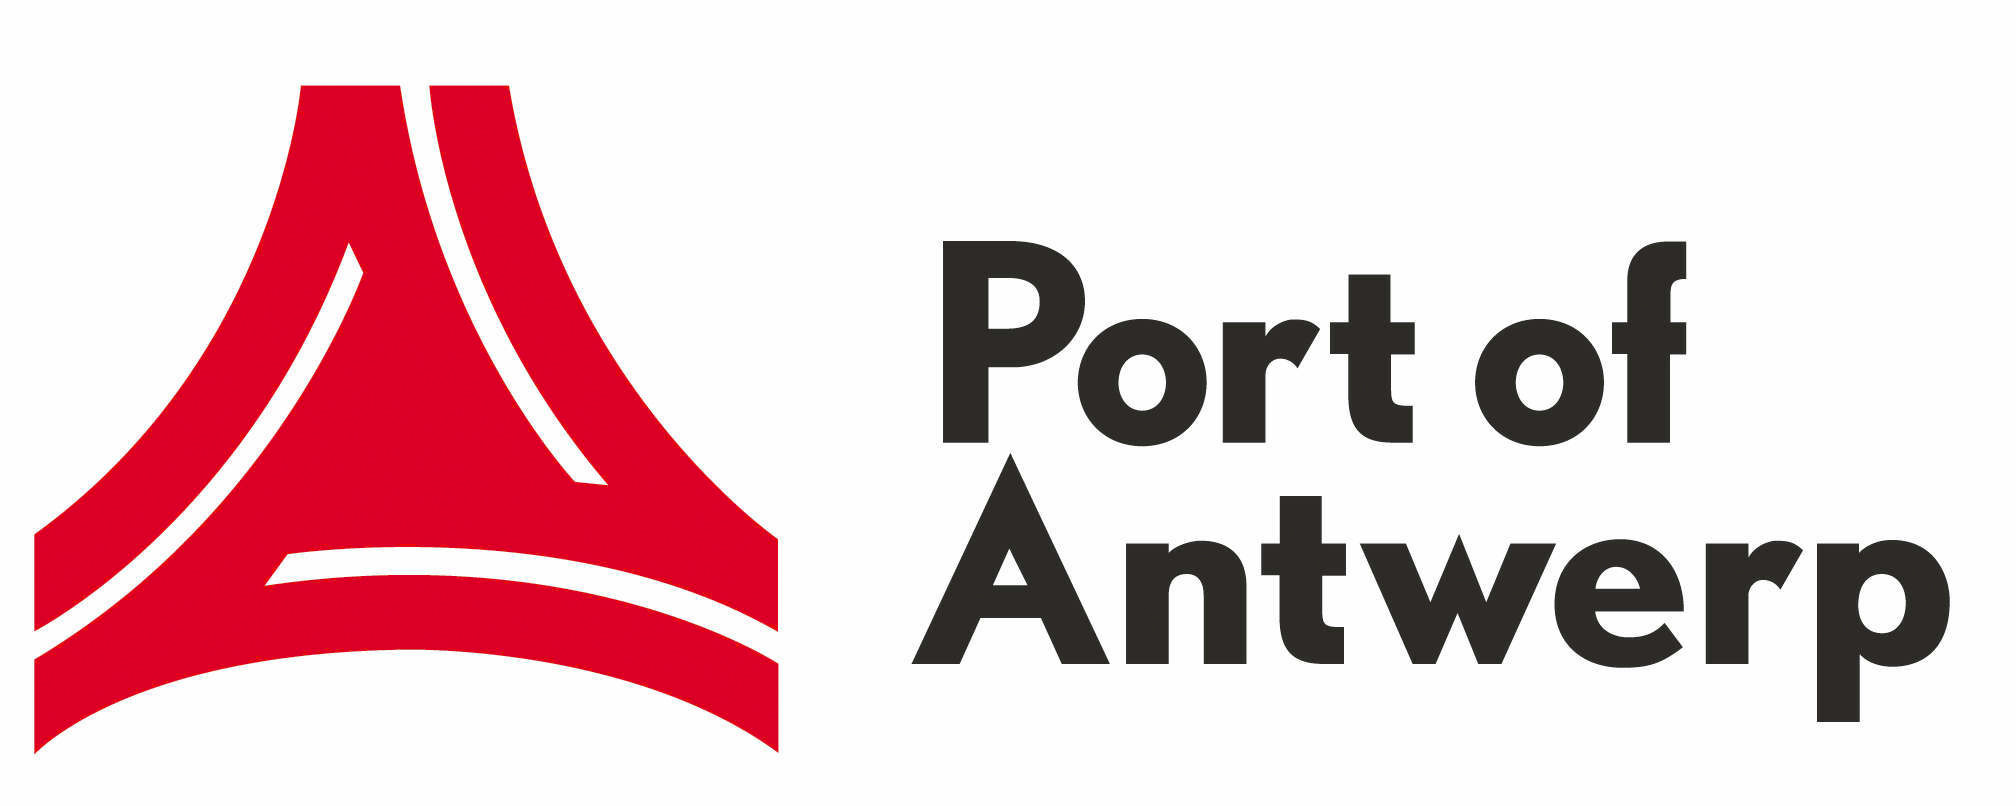 port_of_antwerp-logo.jpg